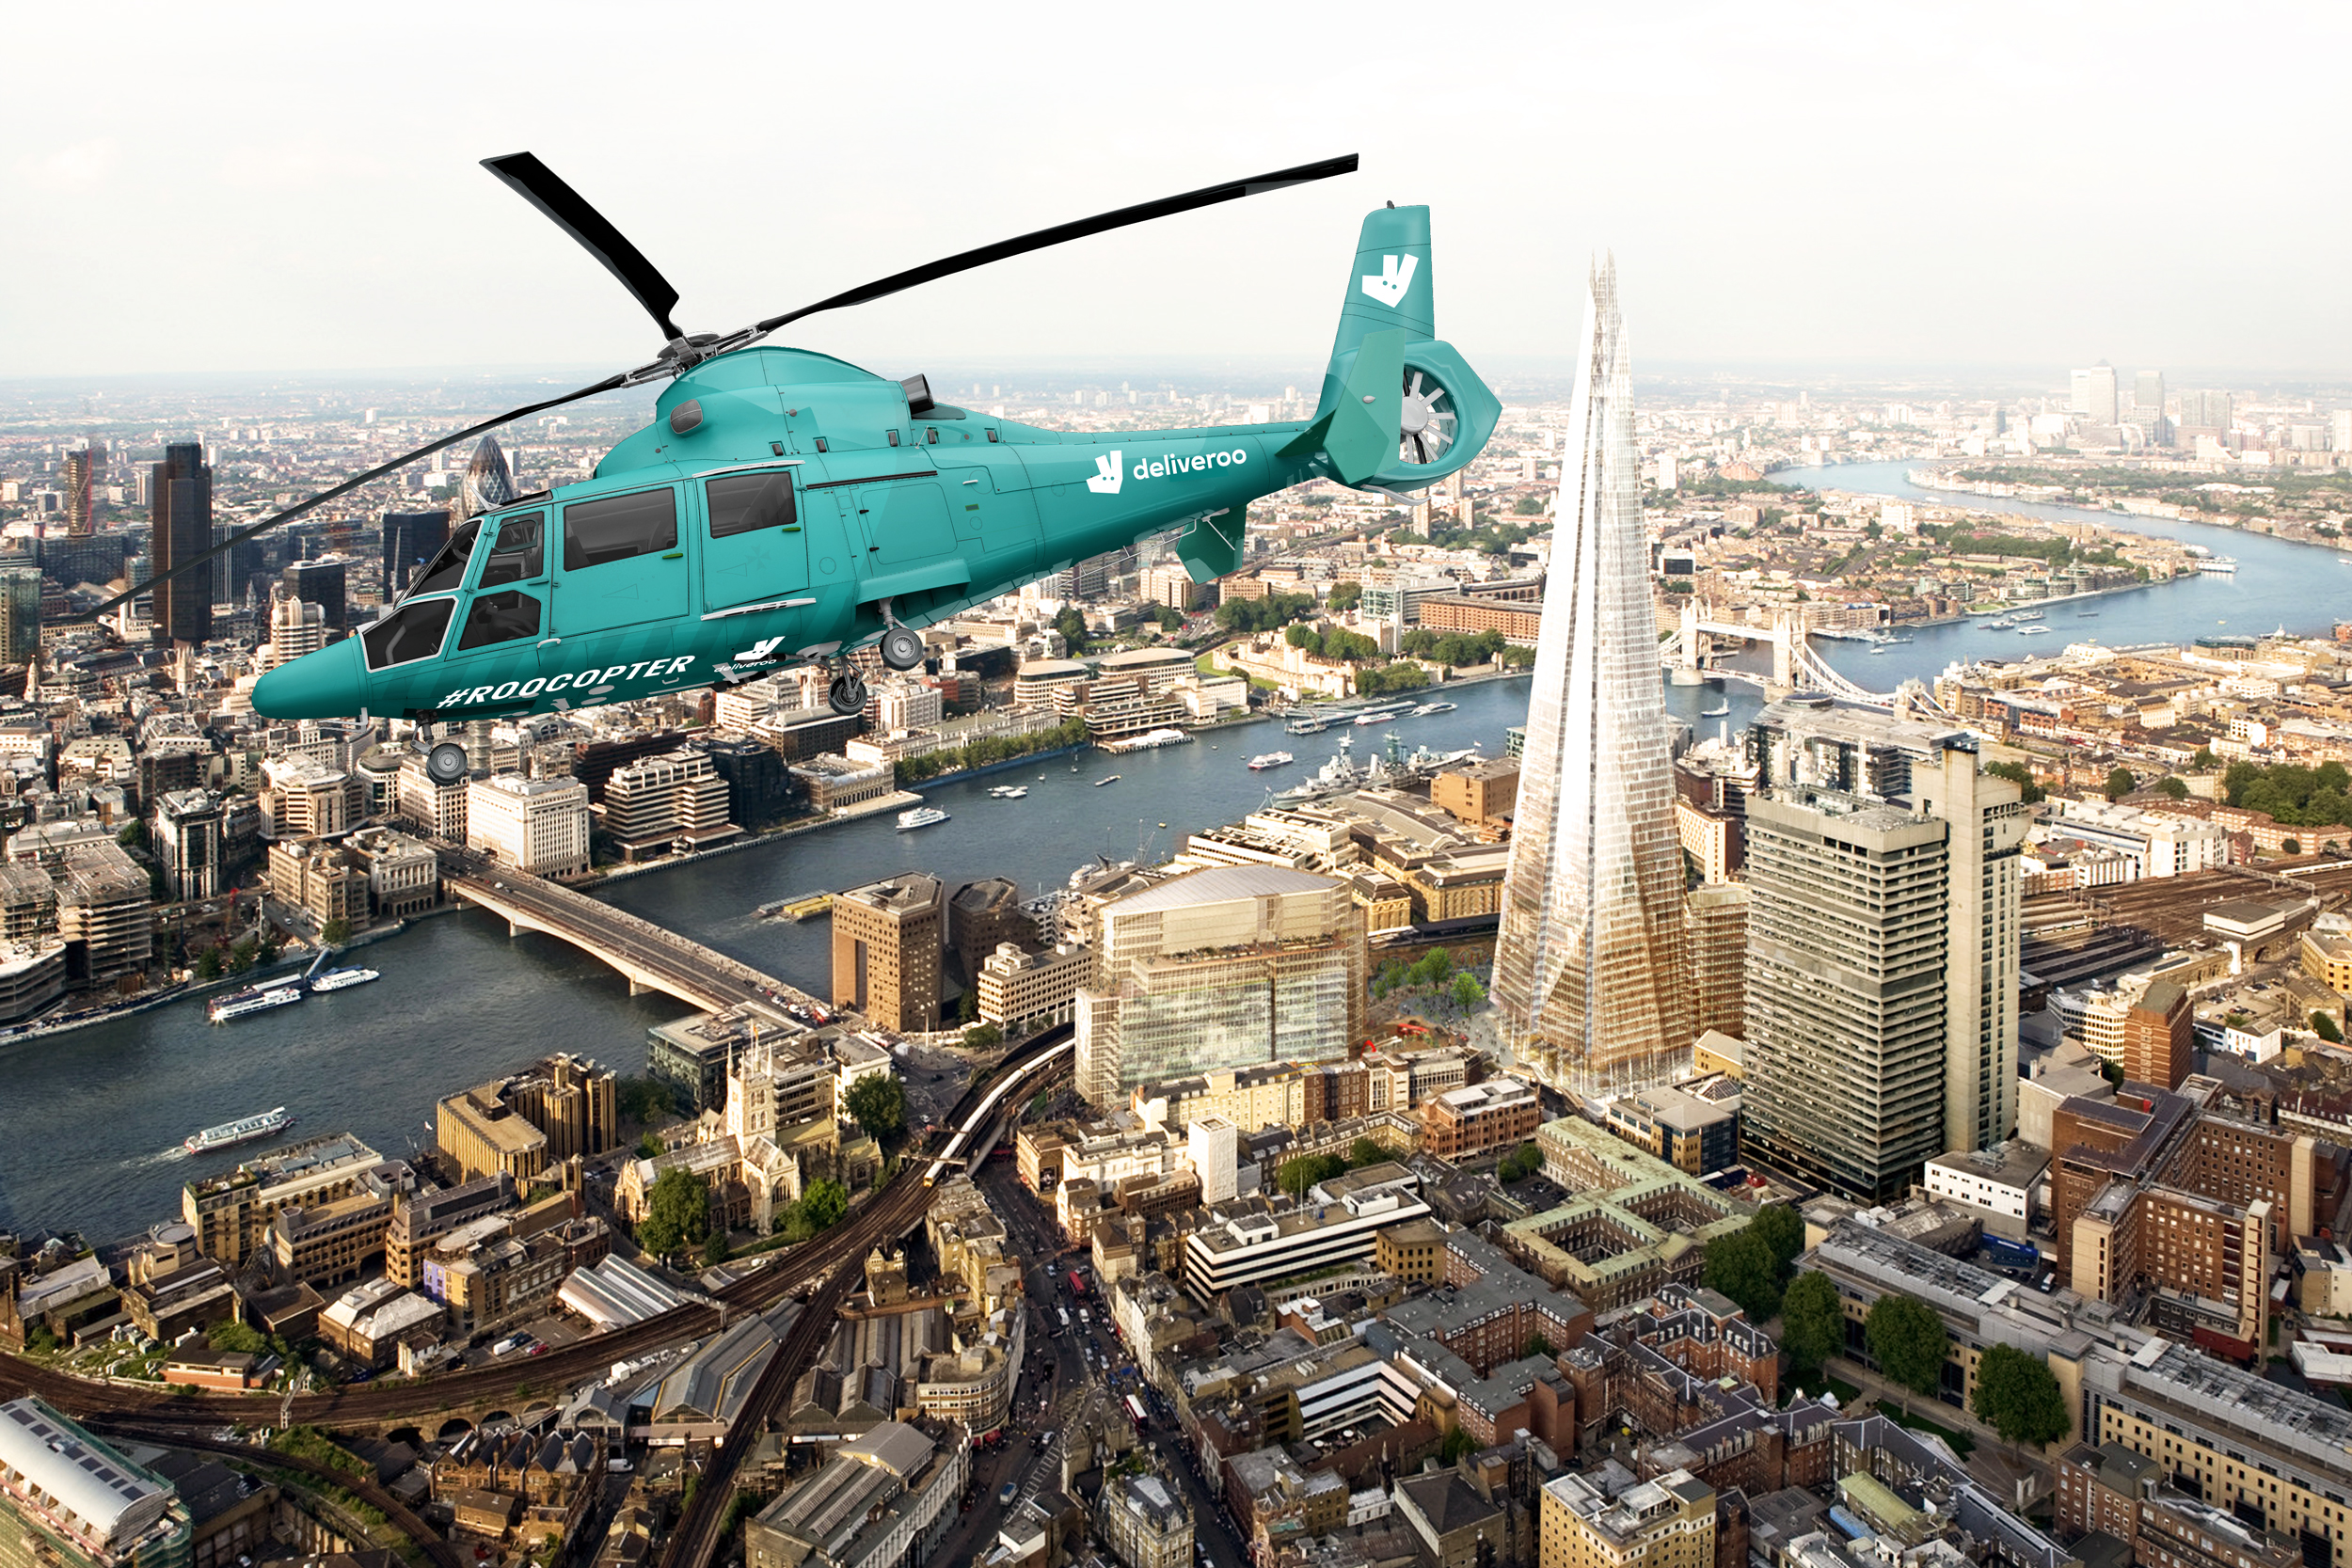 Food delivery service Deliveroo adds helicopter to London food delivery options